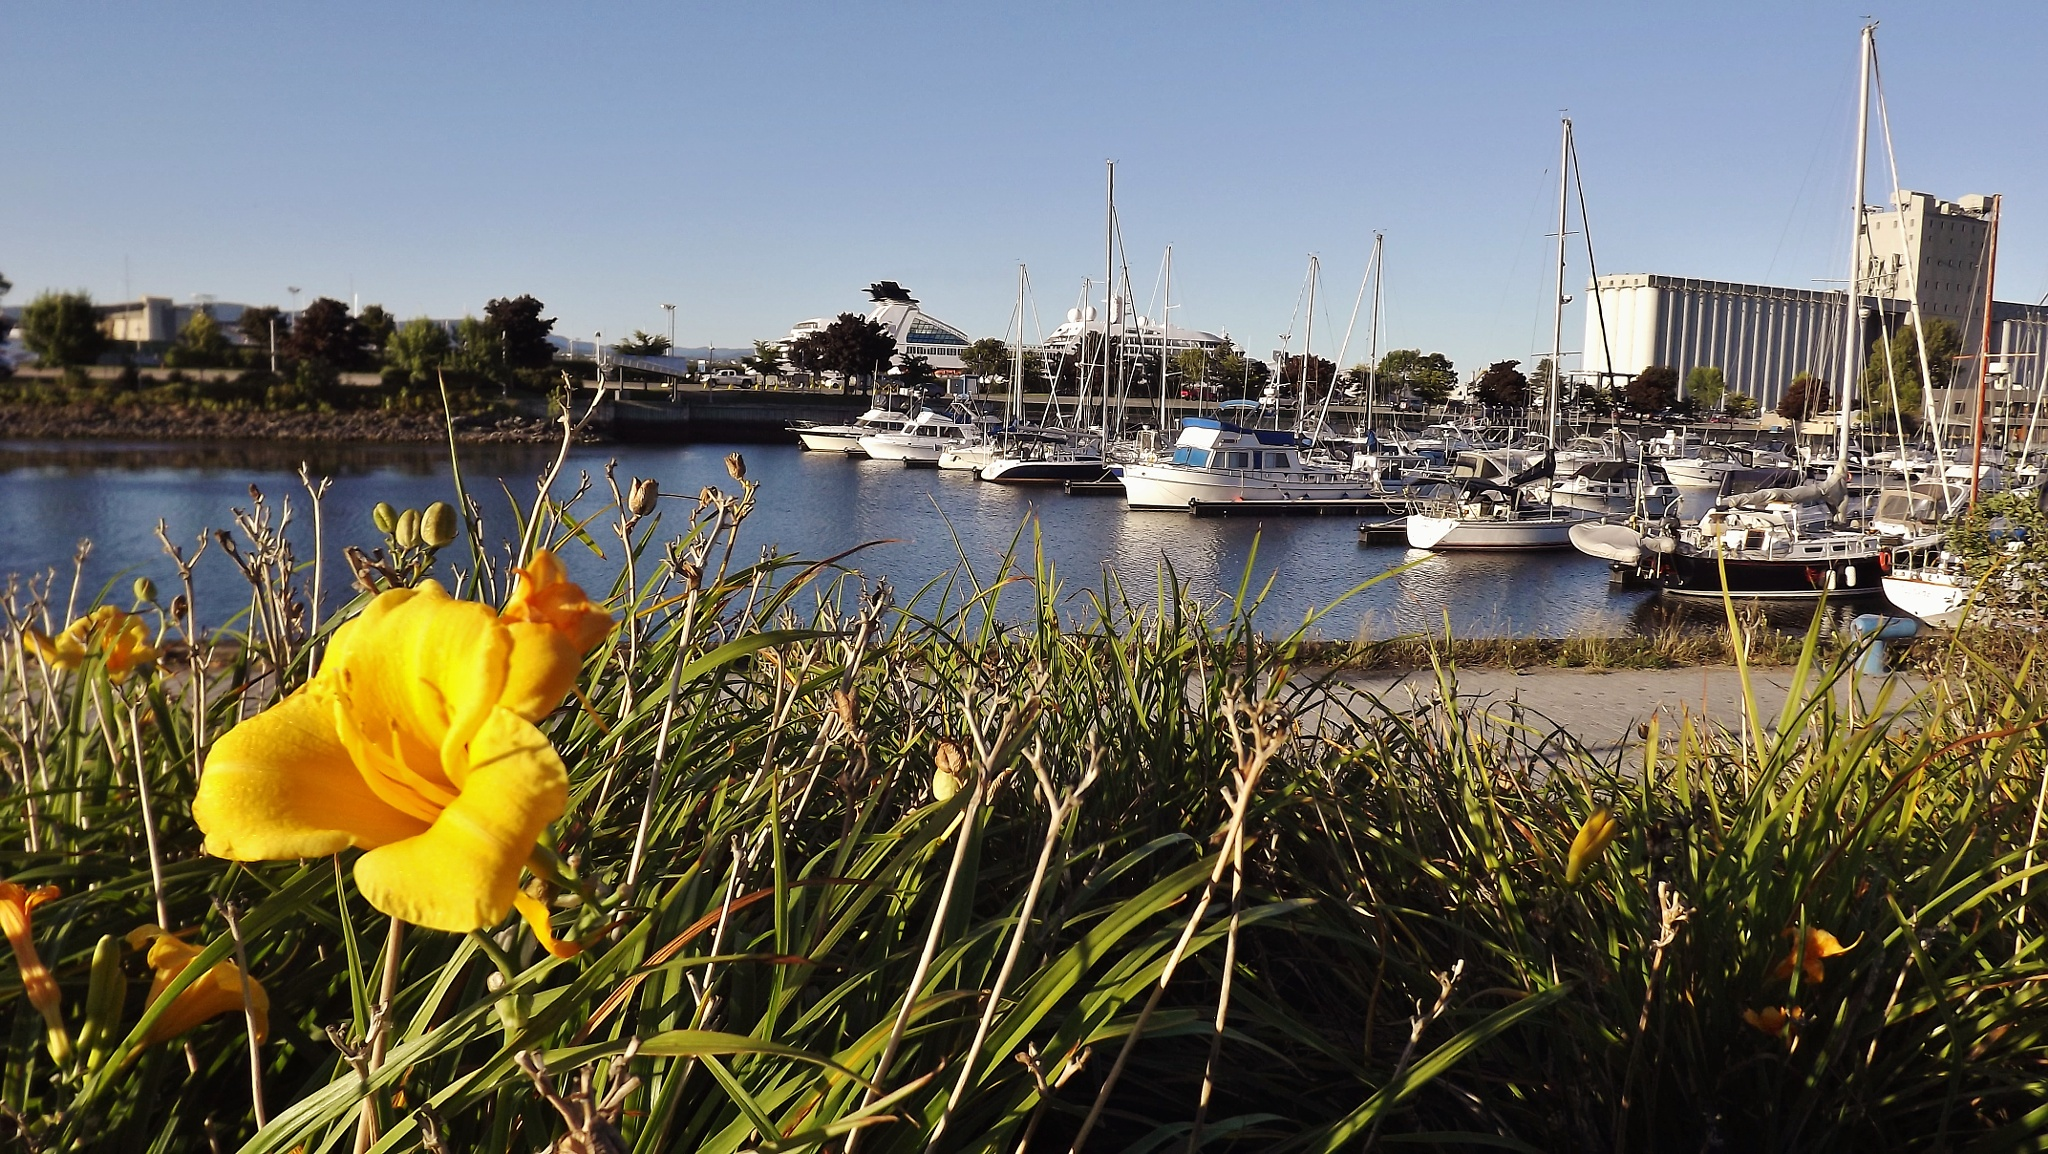 Yellow flower at the marina by real.michaud.5036